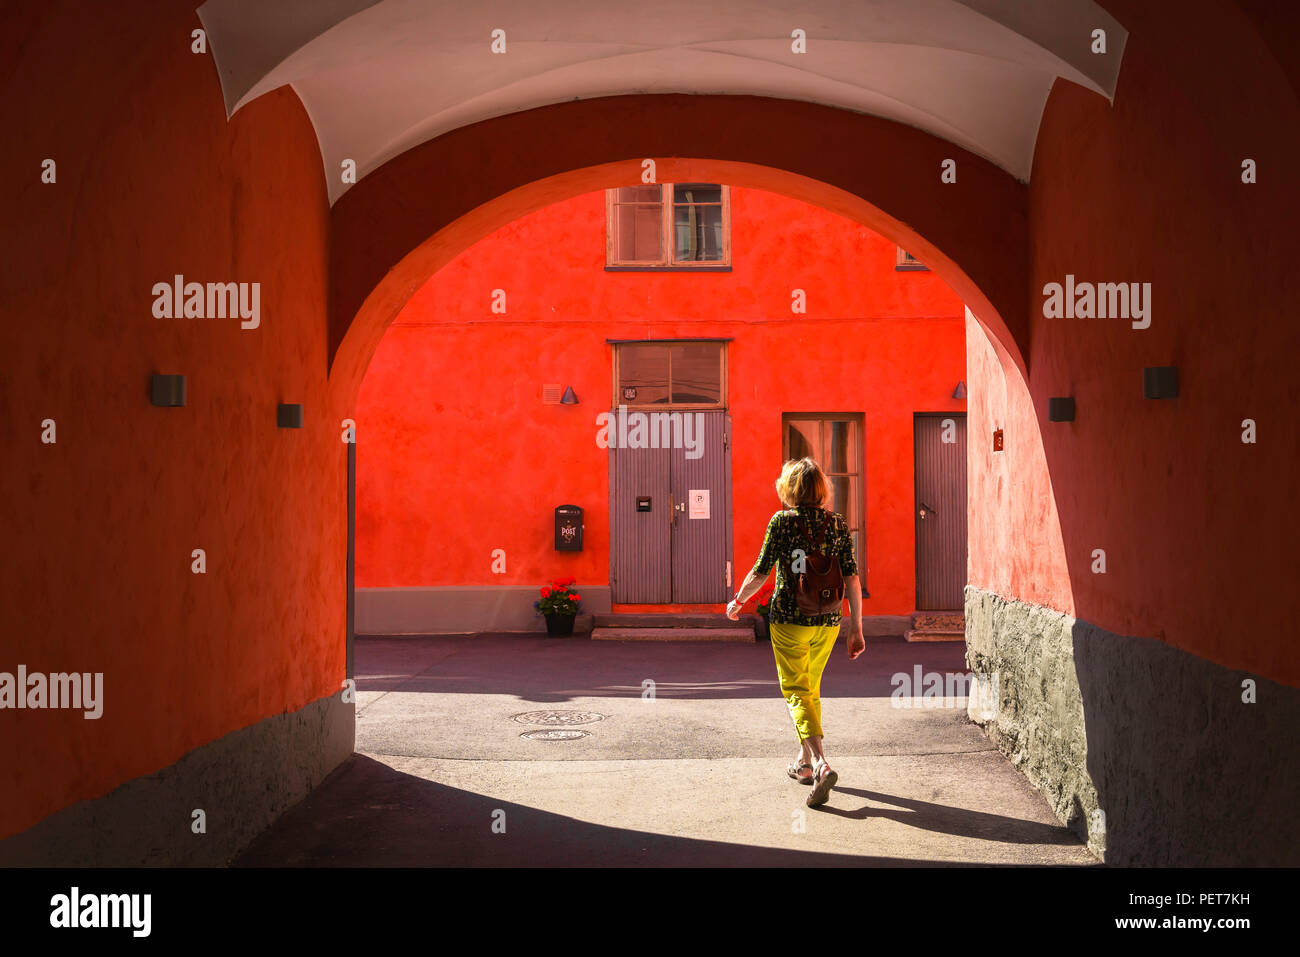 Woman solo travel, rear view of a middle aged female traveller walking alone through a colorful arcade in the old town quarter of Helsinski, Finland. - Stock Image